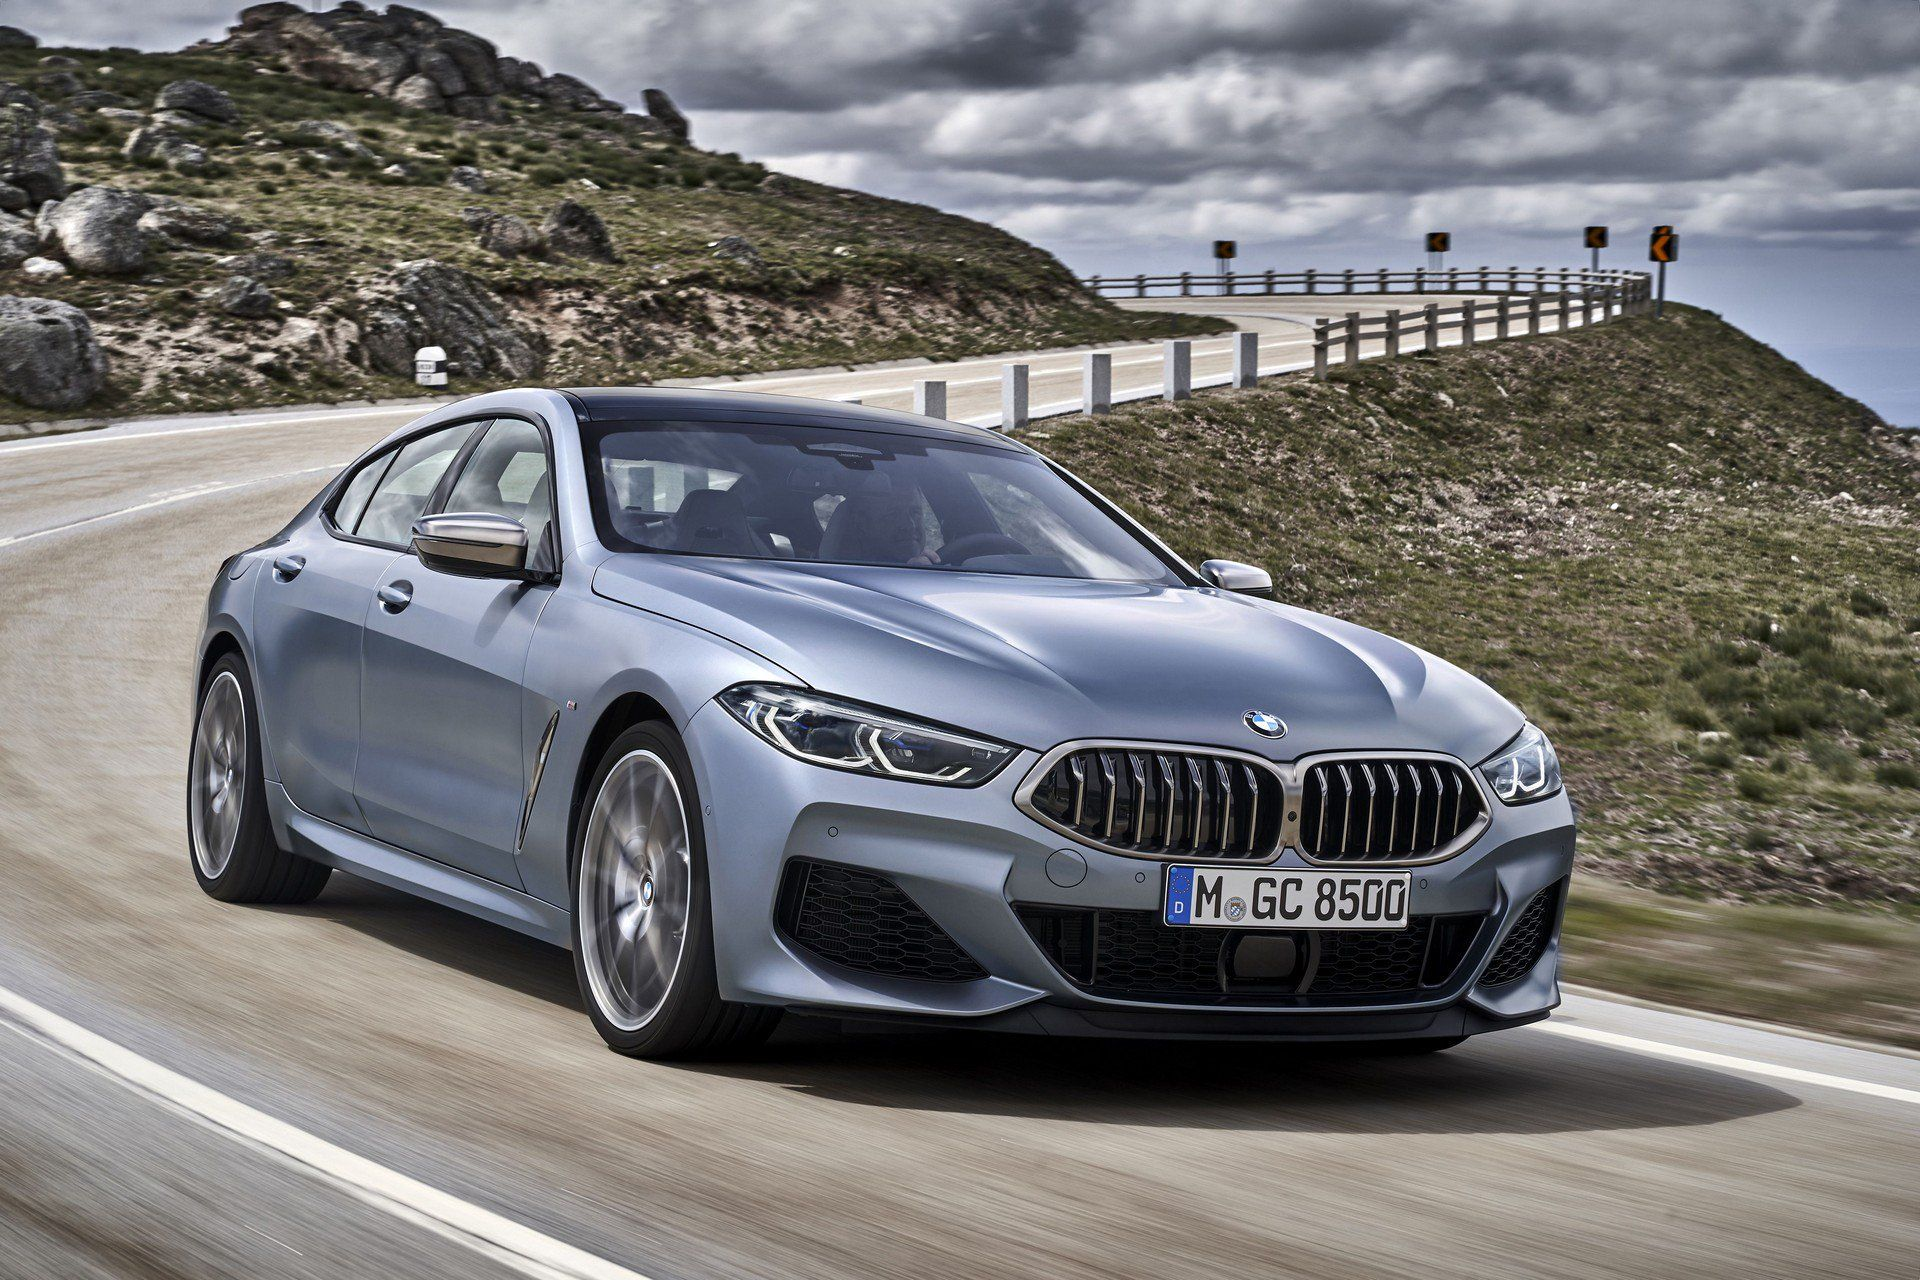 Bmw 8 Series Gran Coupe Is Official Bmw New Bmw Gran Coupe